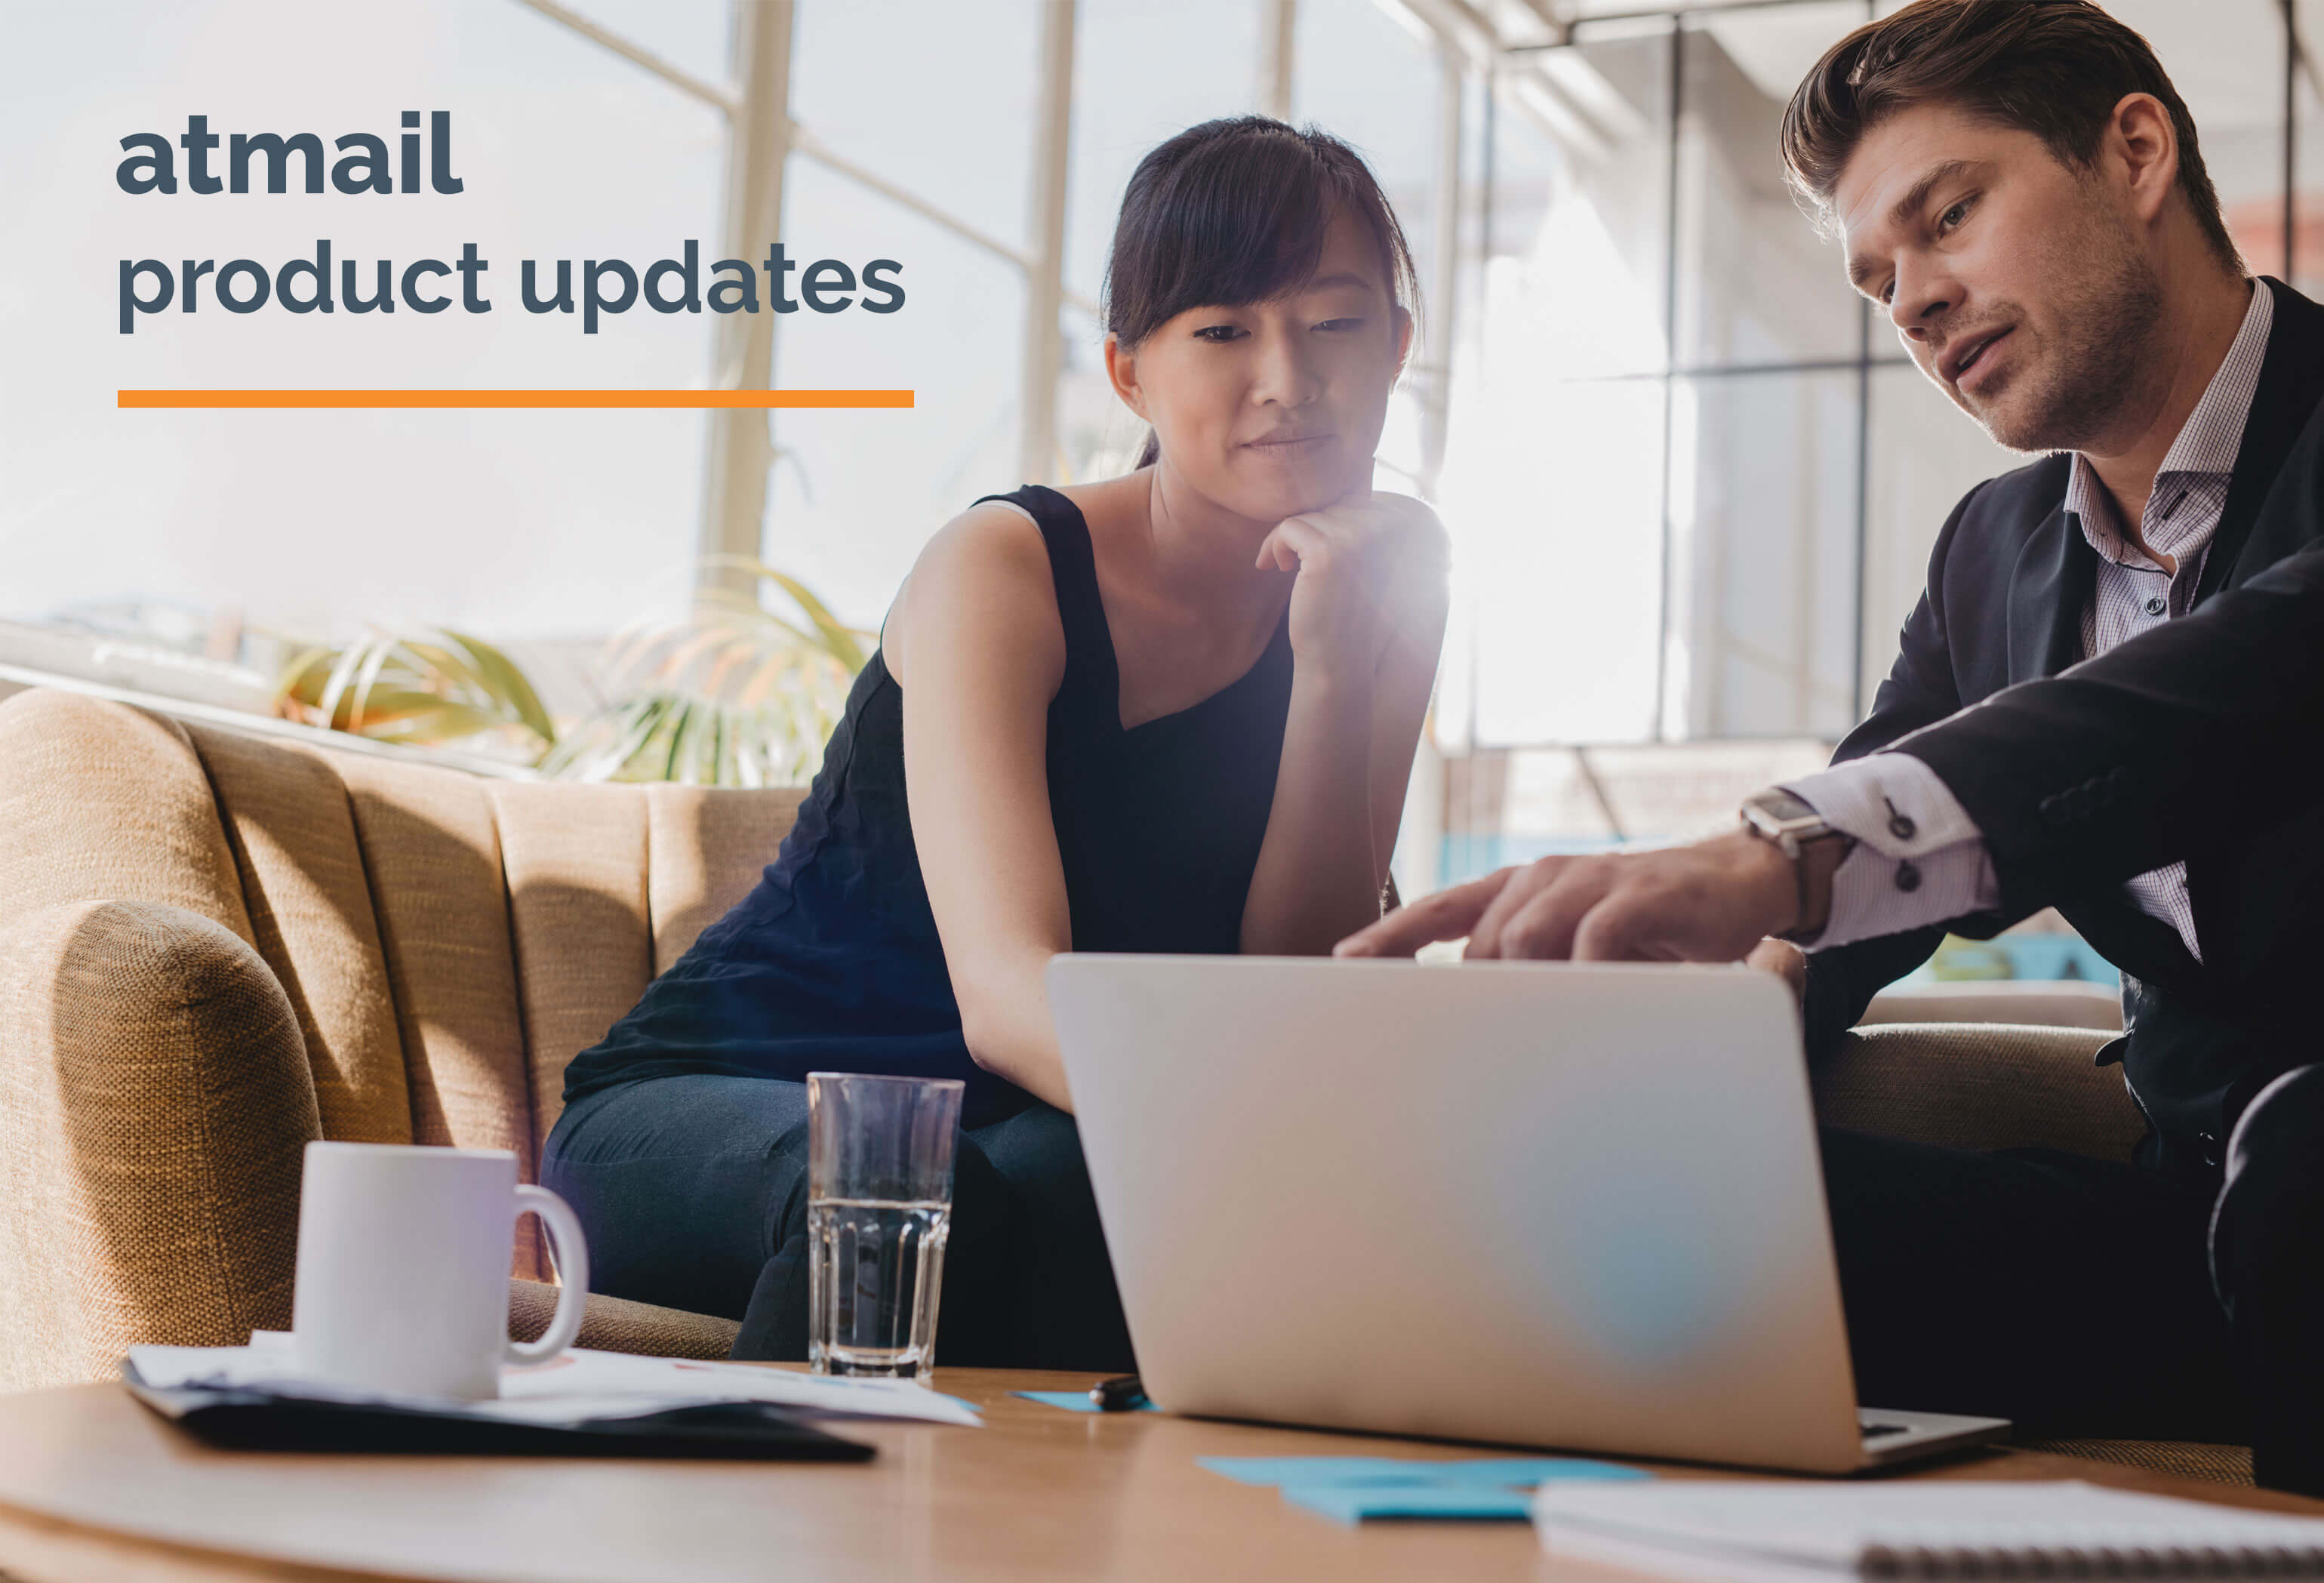 atmail-product-updates, trusted email hosting partner, atmail, email solutions